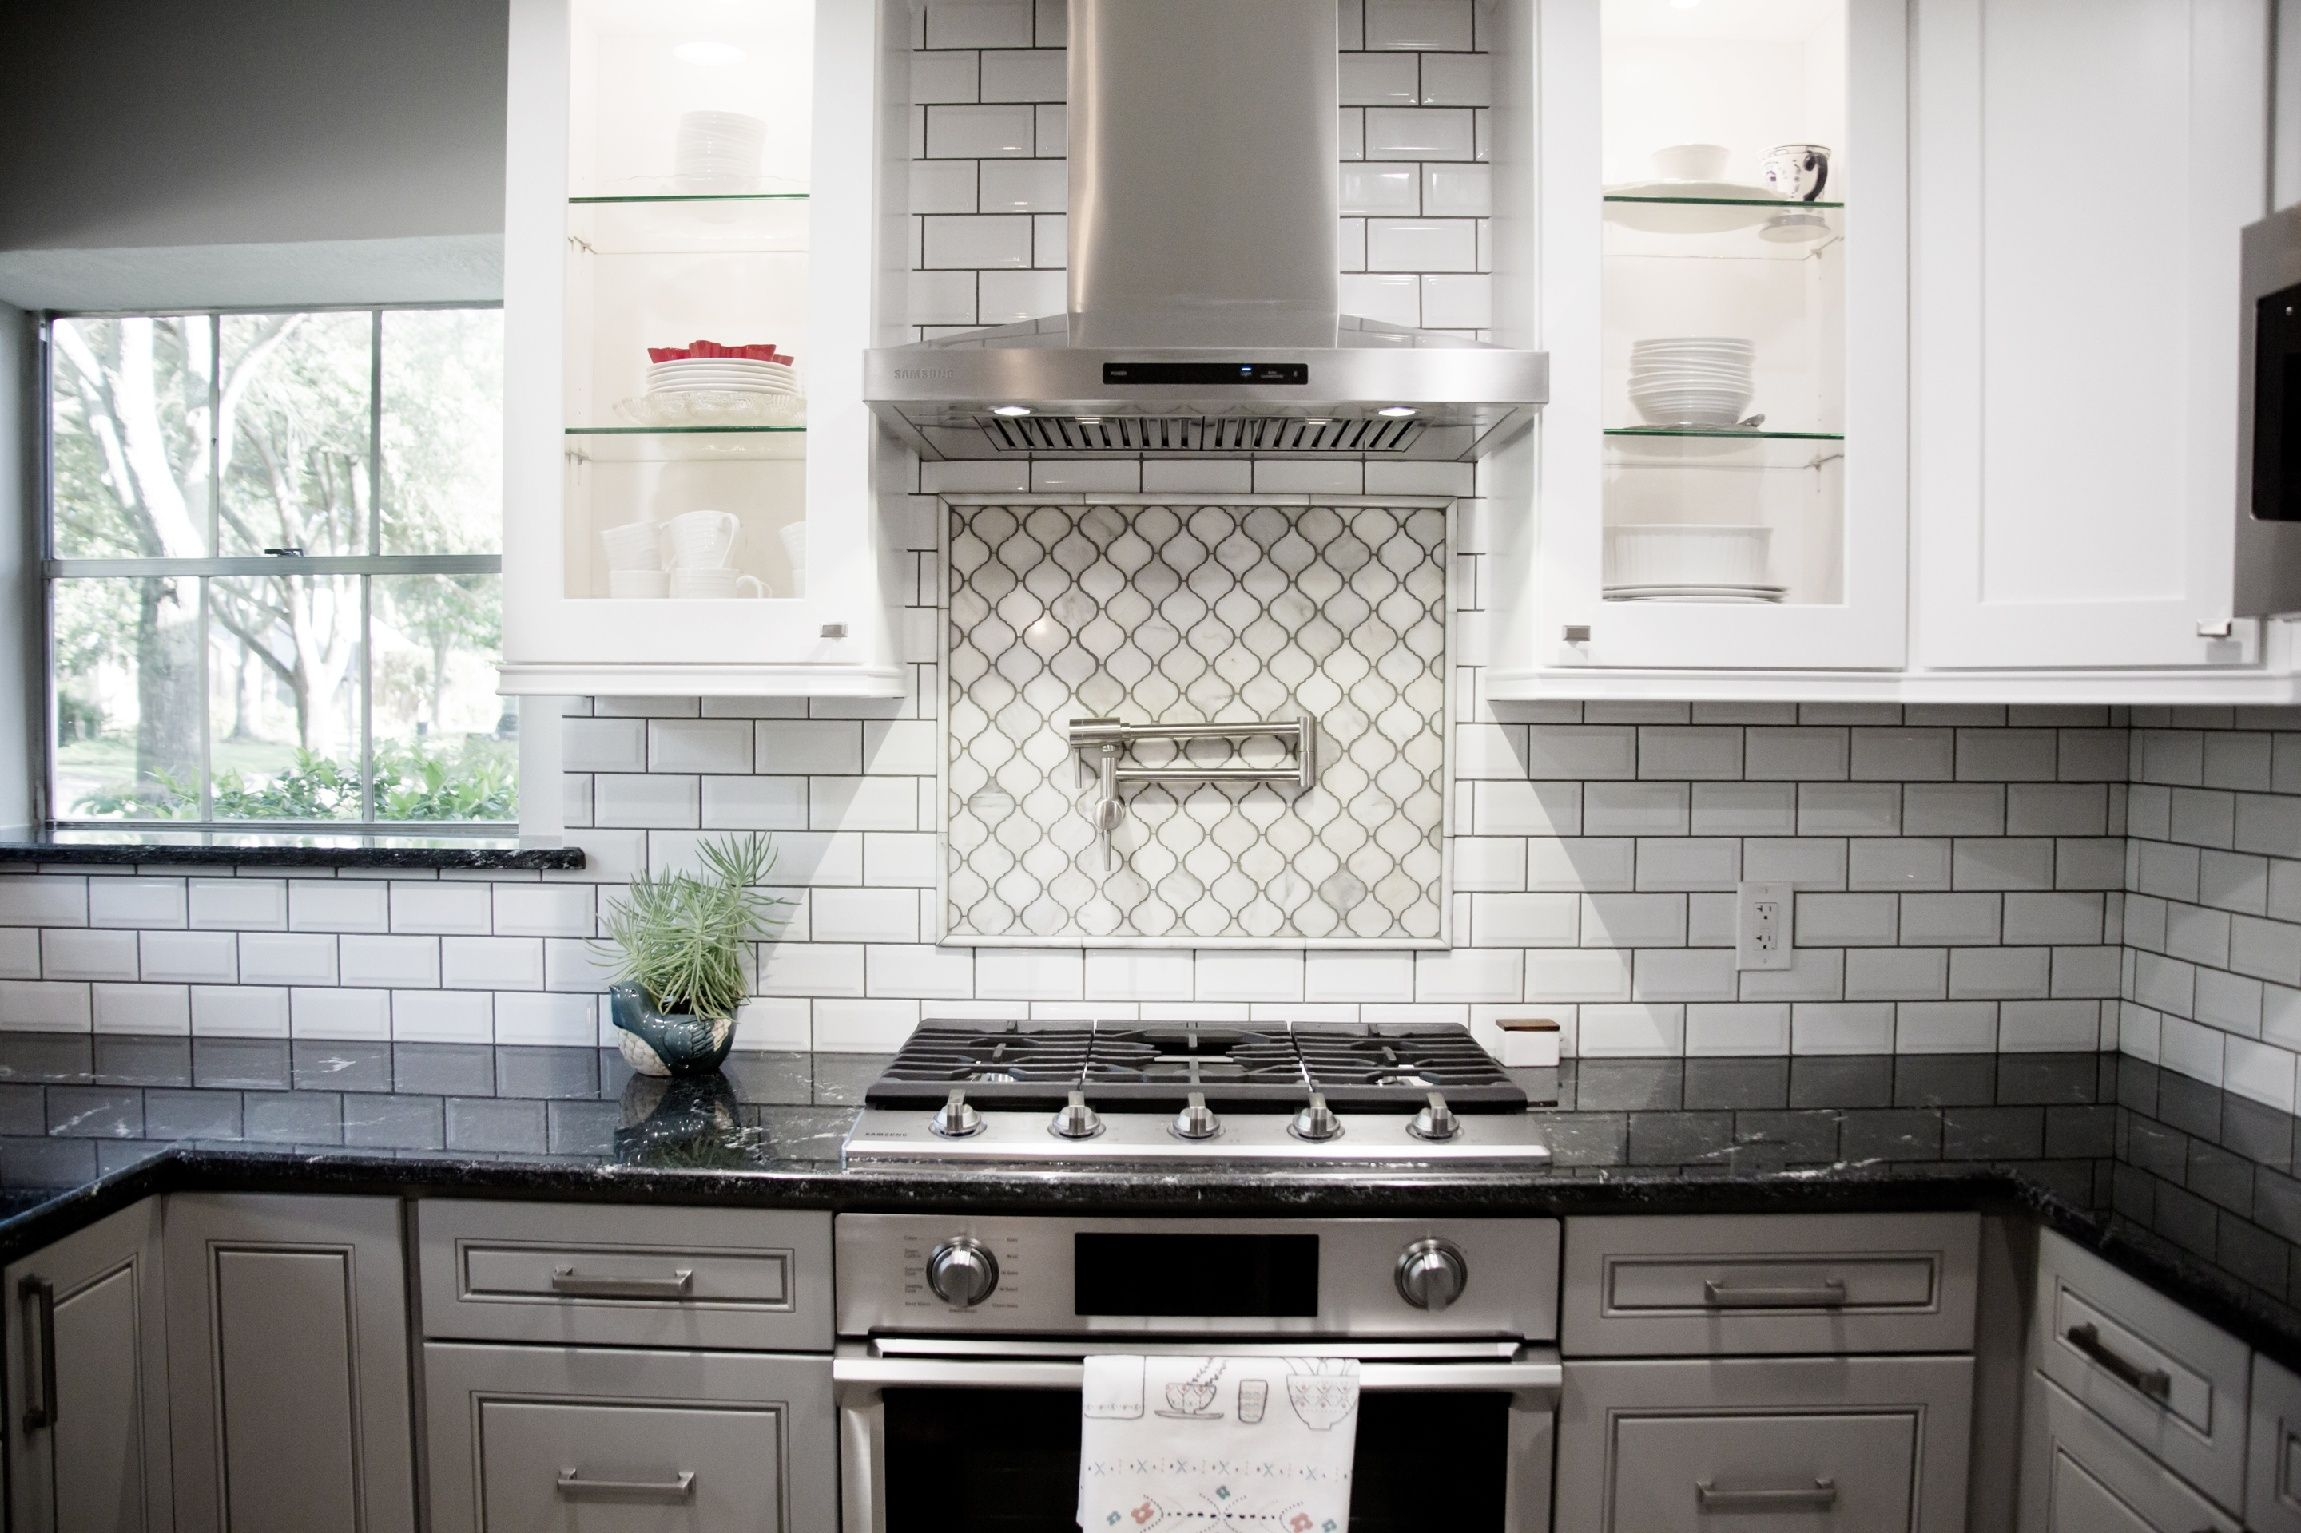 Embrace Contrast For A Striking Design Statement By Incorporating A Clean  White Backsplash, Intricate Mosaic